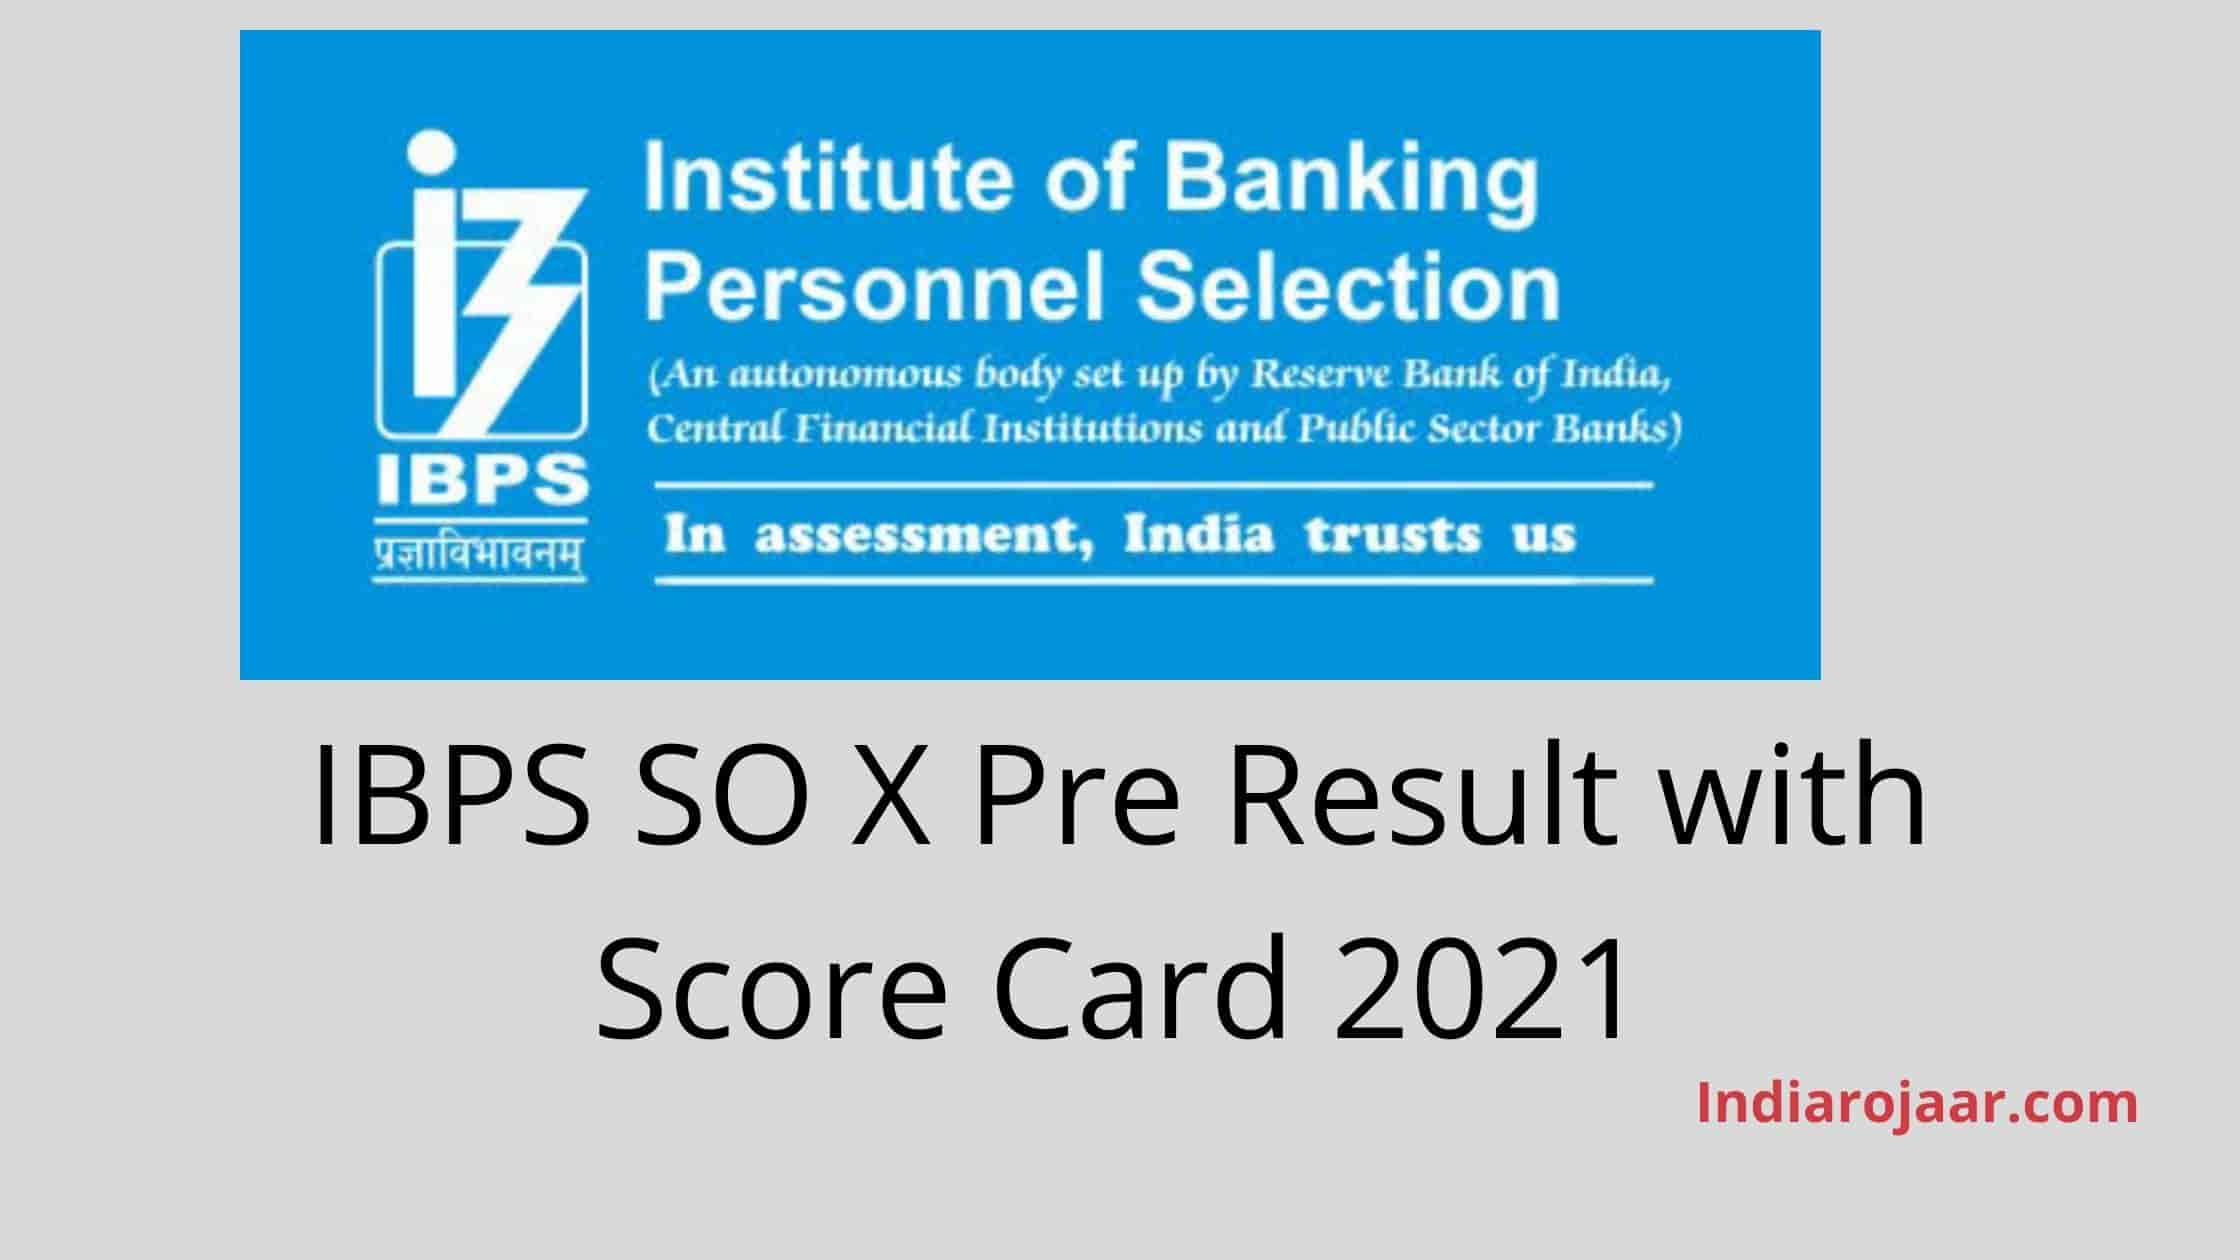 IBPS SO X Pre Result with Score Card 2021